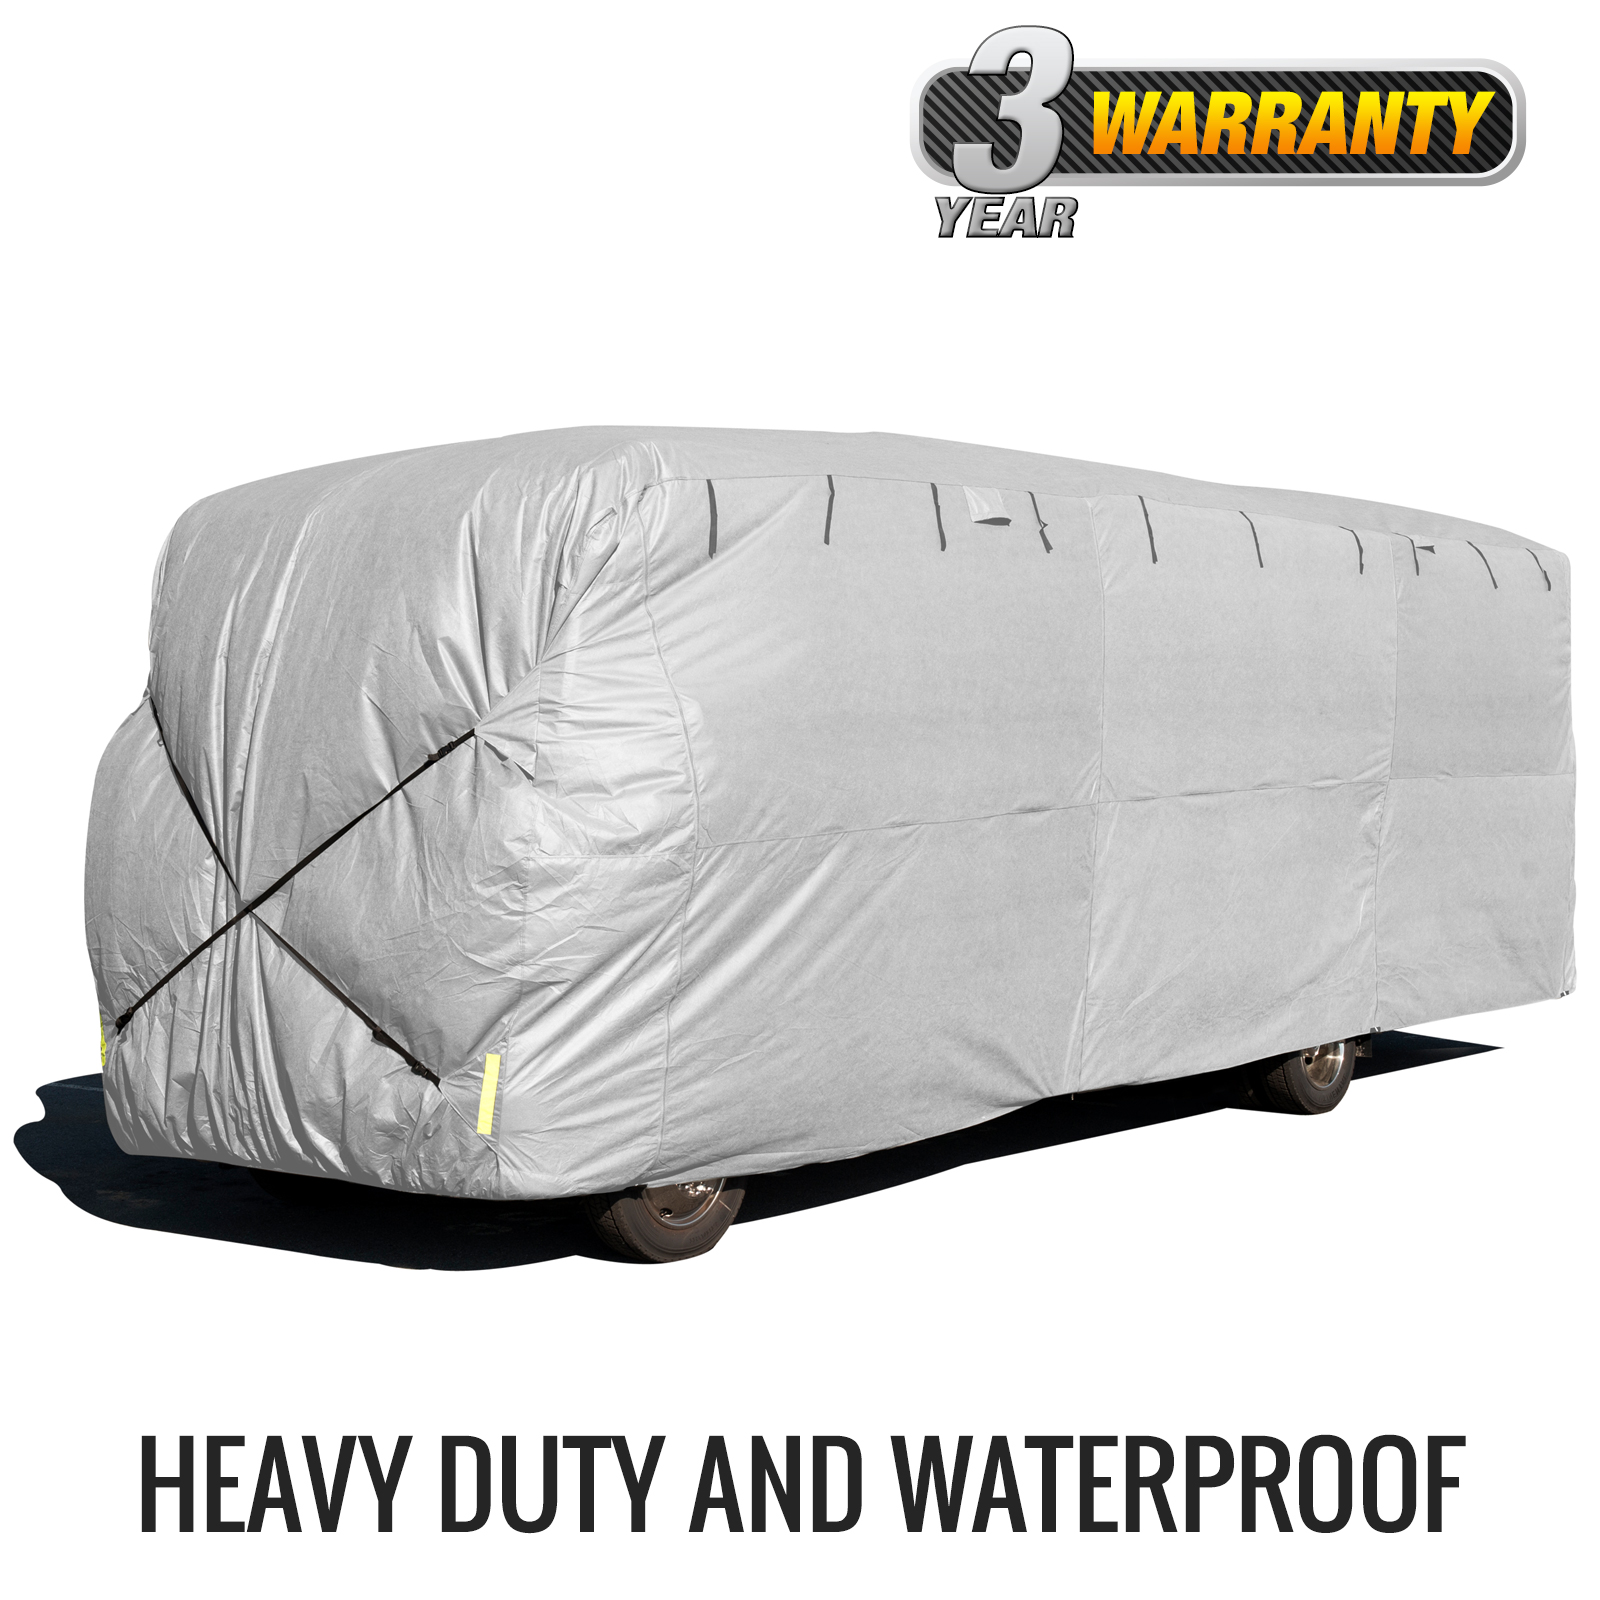 Budge Premier Class A RV Cover (Gray) Size A Up to 24' Long